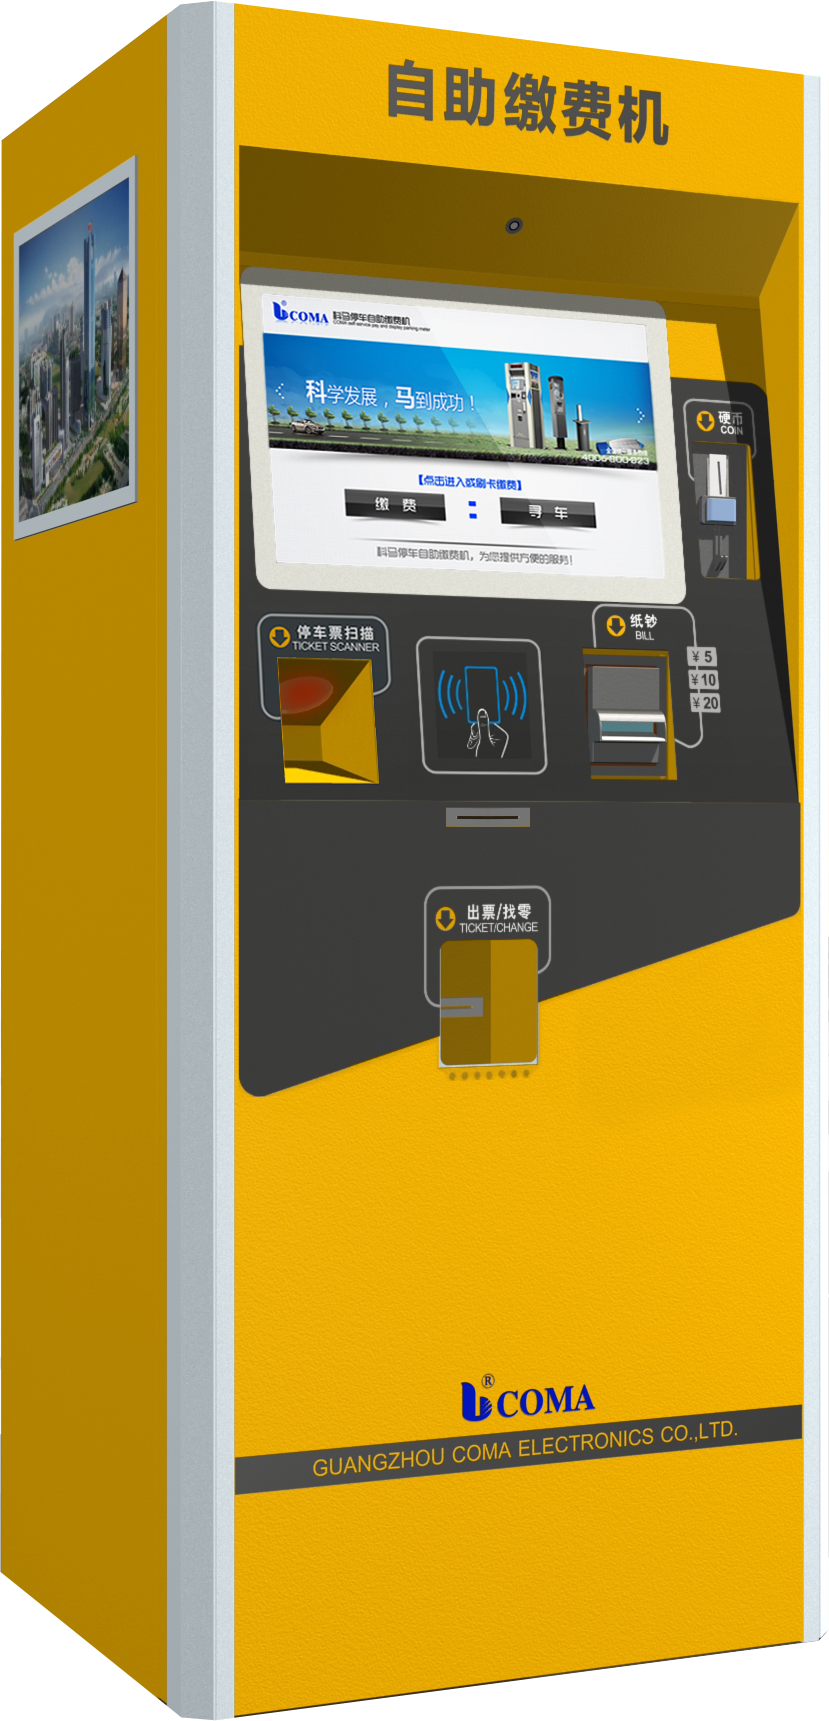 selfservice car parking system electronic bill acceptor